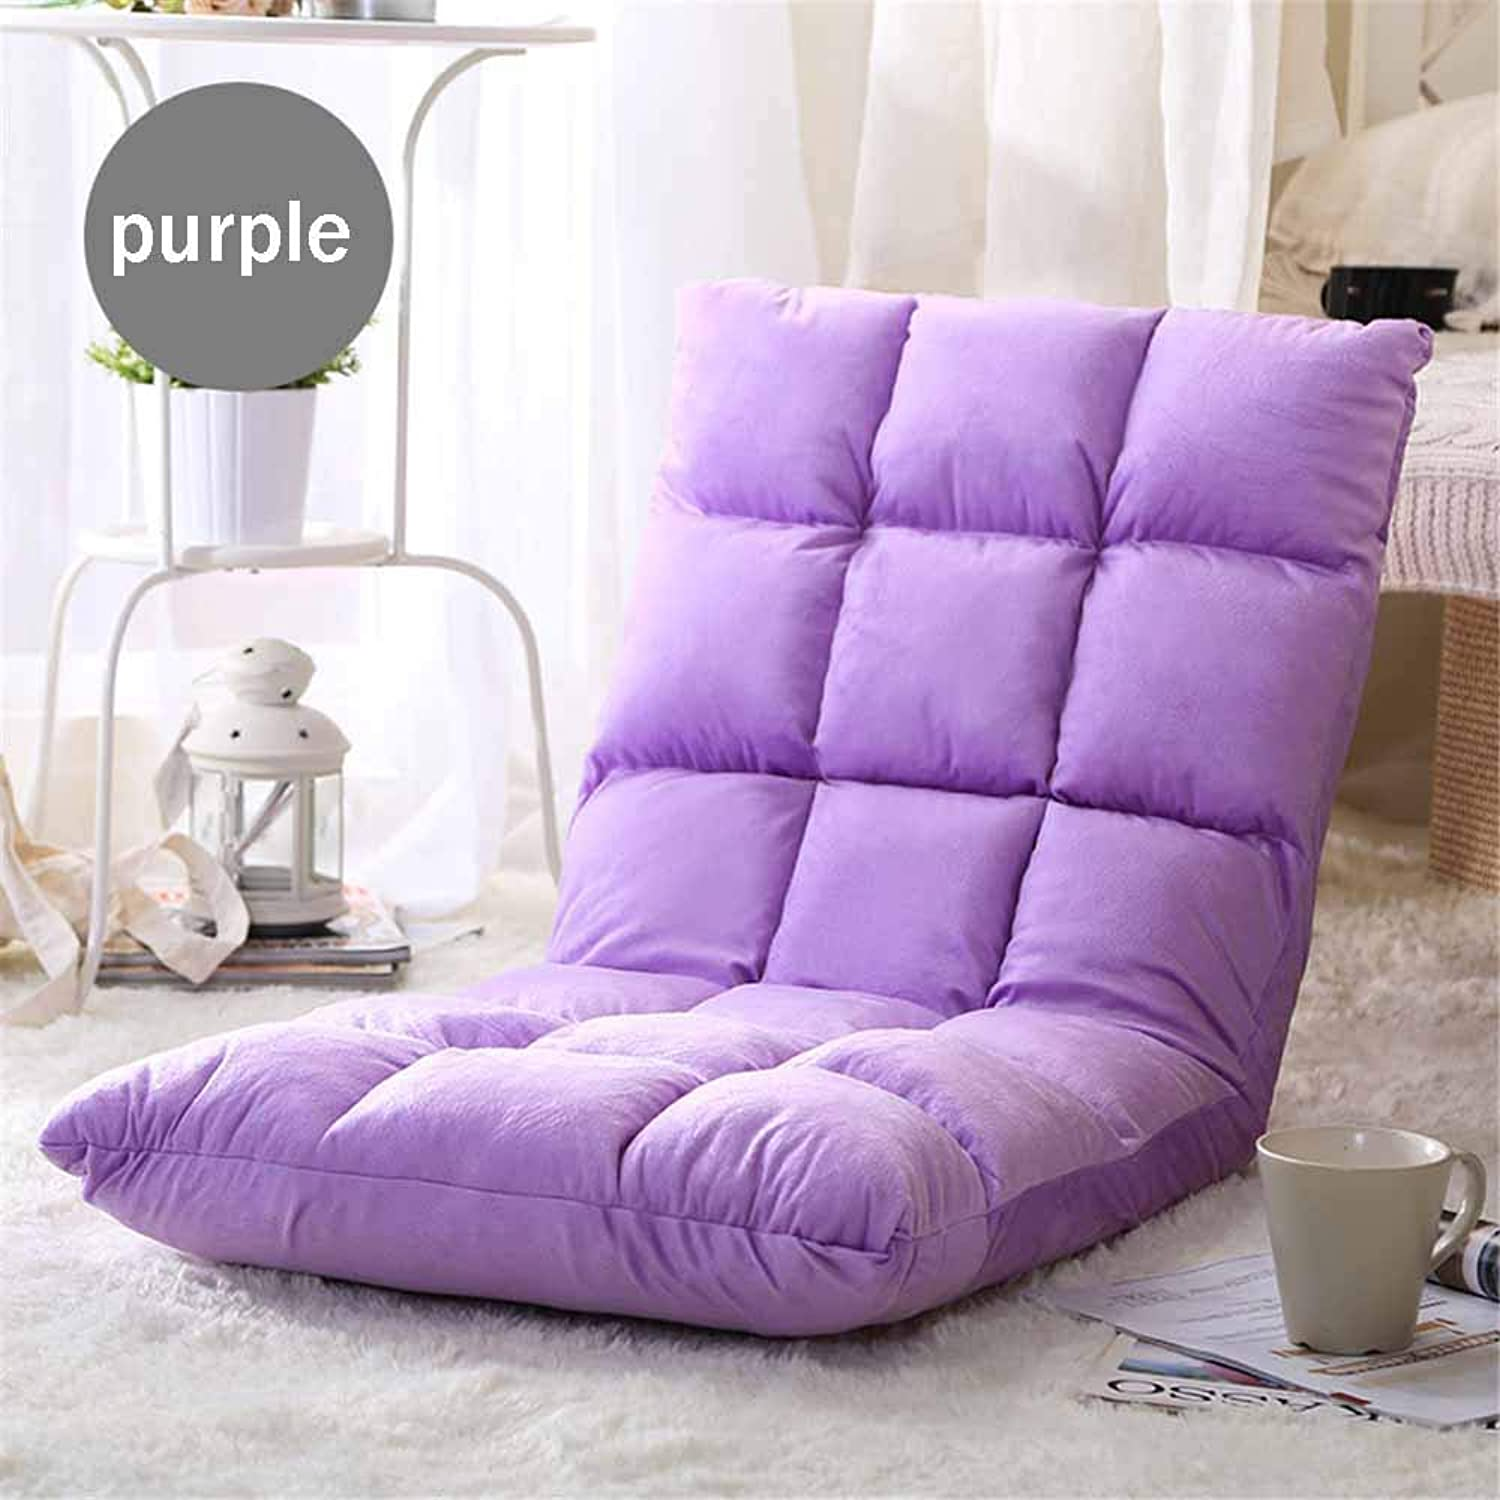 Cushion Lazy Sofa Plush Position Comfortable Adjustable Gear Soft and Comfortable Environmental Predection for Relief Padding Chair Seated Pain,Purple,80X40X13CM